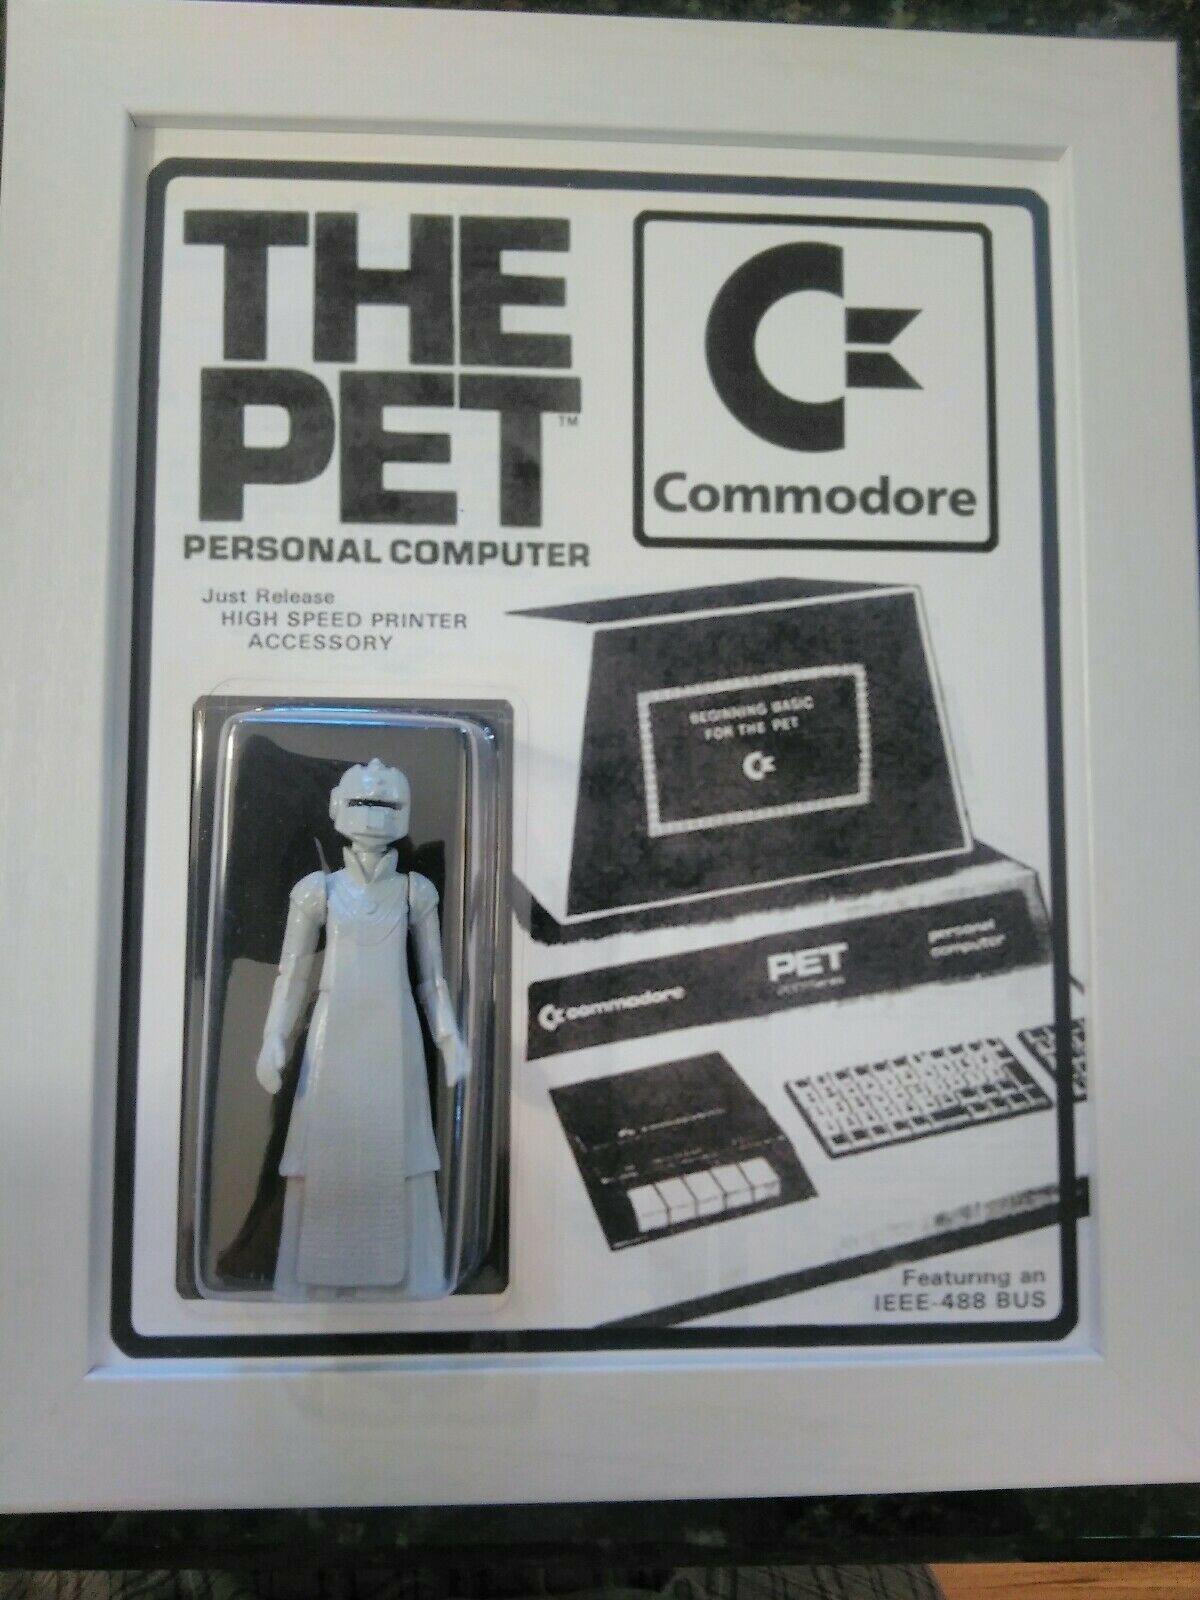 Star Wars Trek Sucklord Commodore PET APPLE MAC suckadelic DKE DKE DKE PC botaleg 1 1  gran selección y entrega rápida